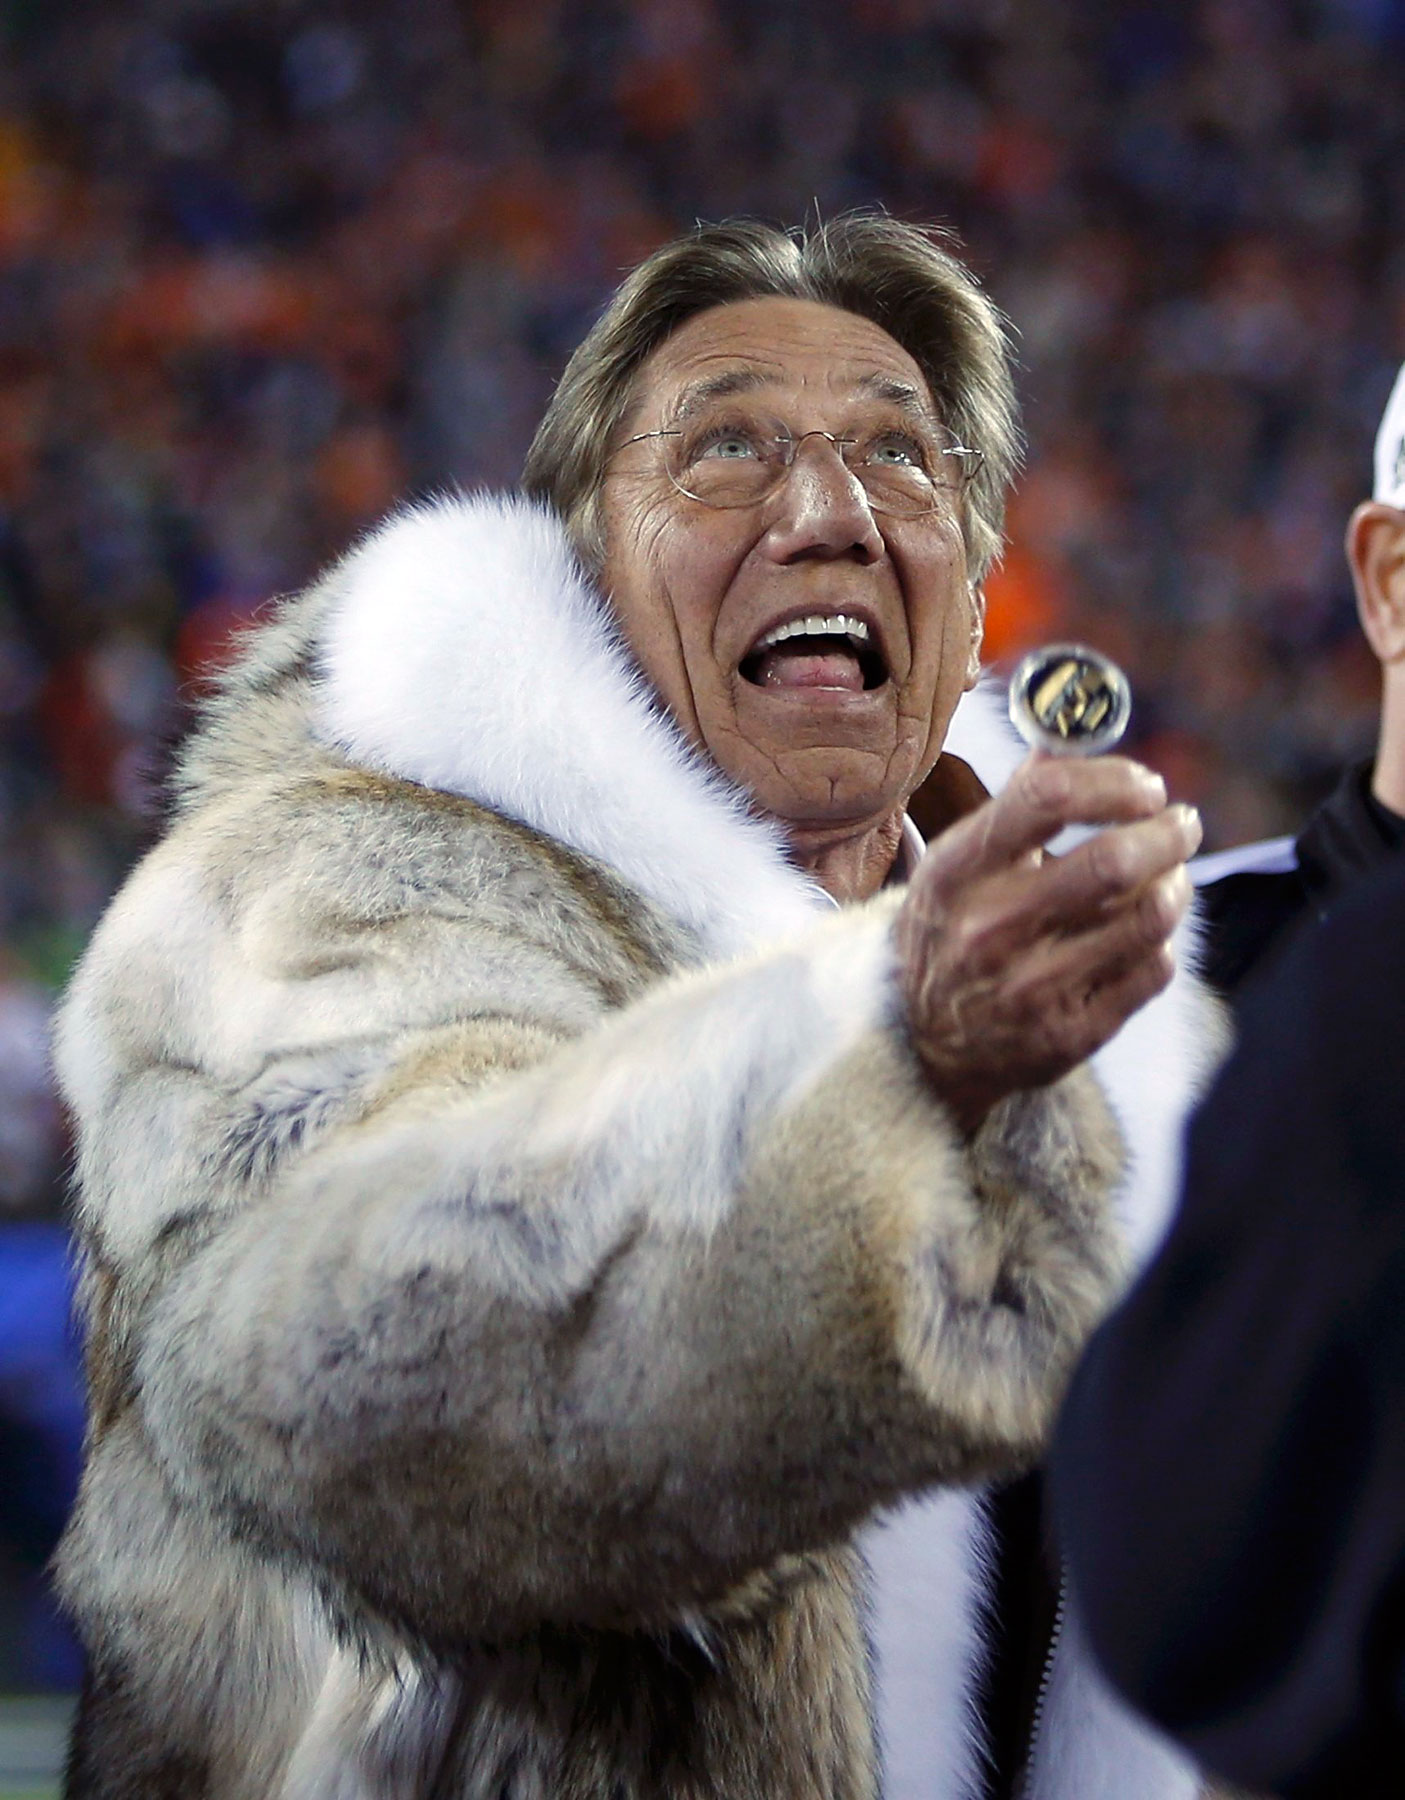 Former New York Jets quarterback Joe Namath performs the official coin toss prior to the start of                                the NFL Super Bowl XLVIII.